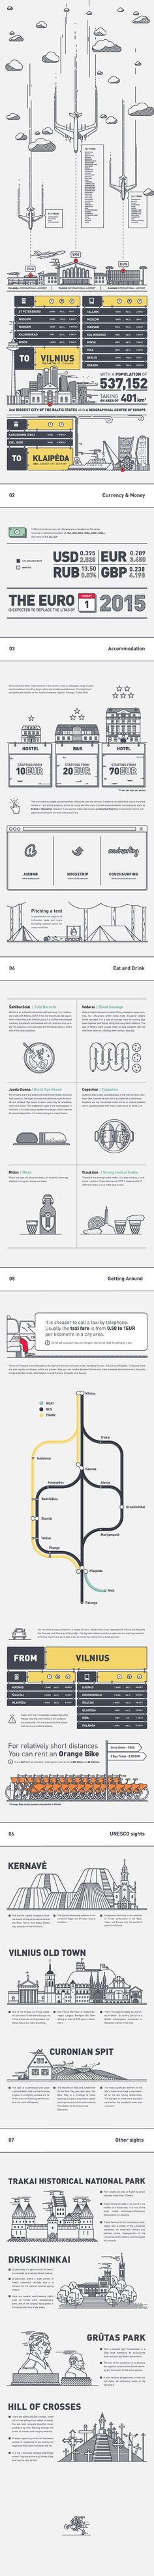 Infographic Infographic guide to Lithuania